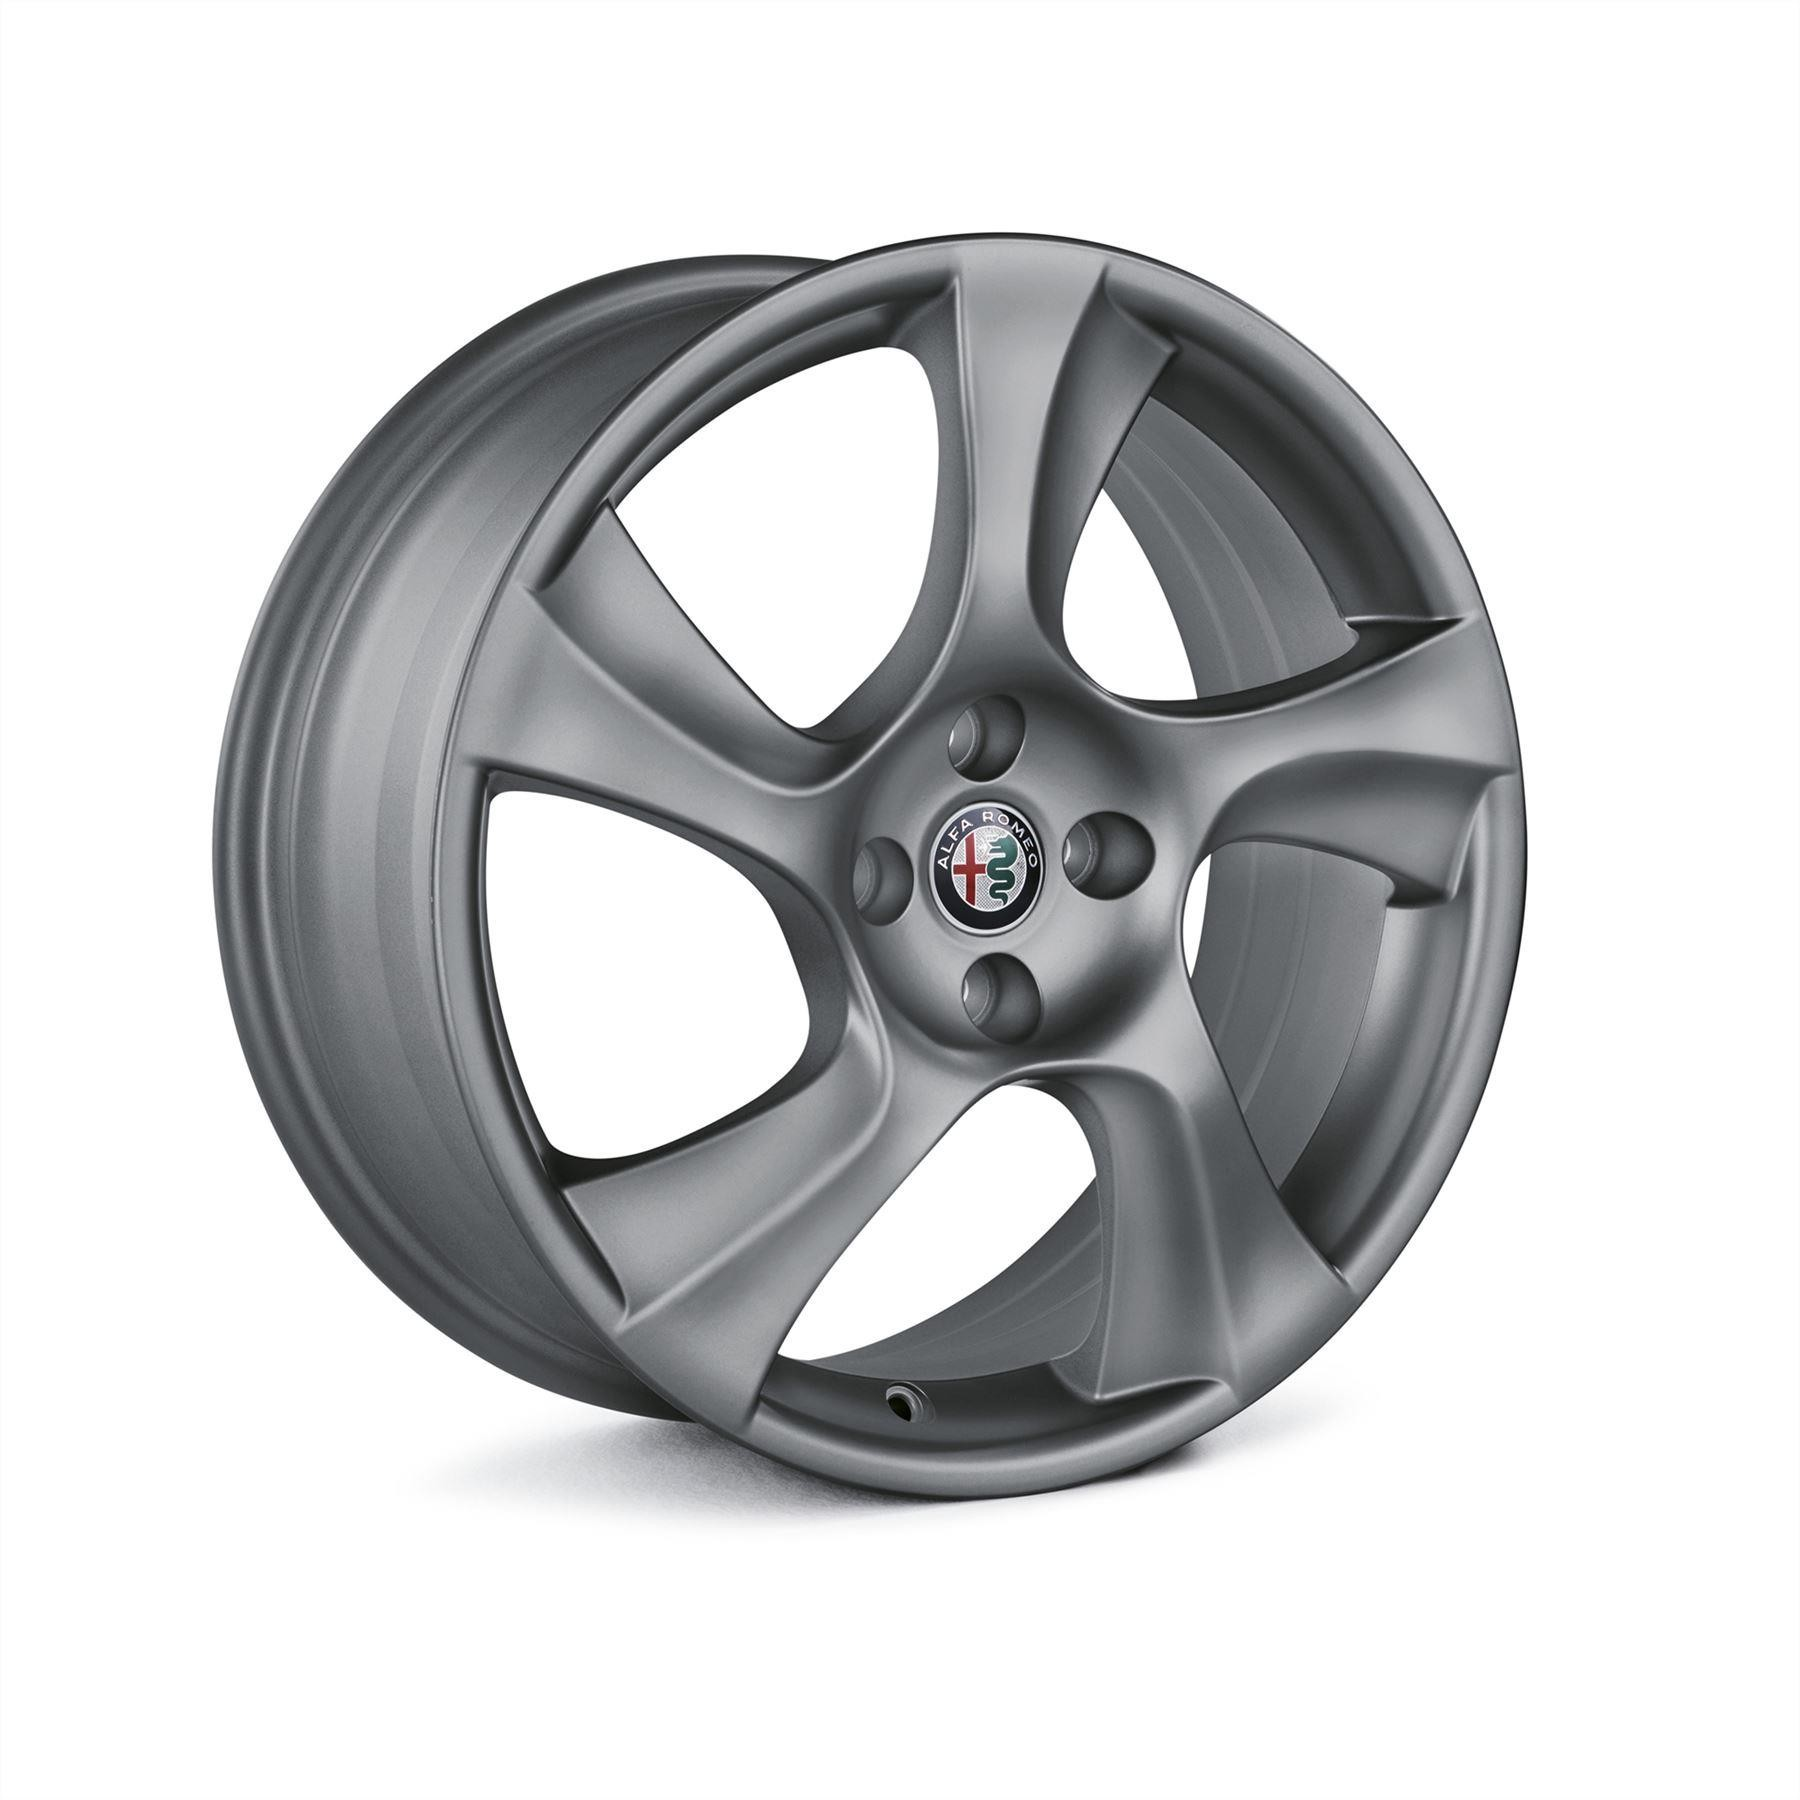 "MiTo 17"" Alloy Wheel Kit (4 x 50903236 Wheels)"